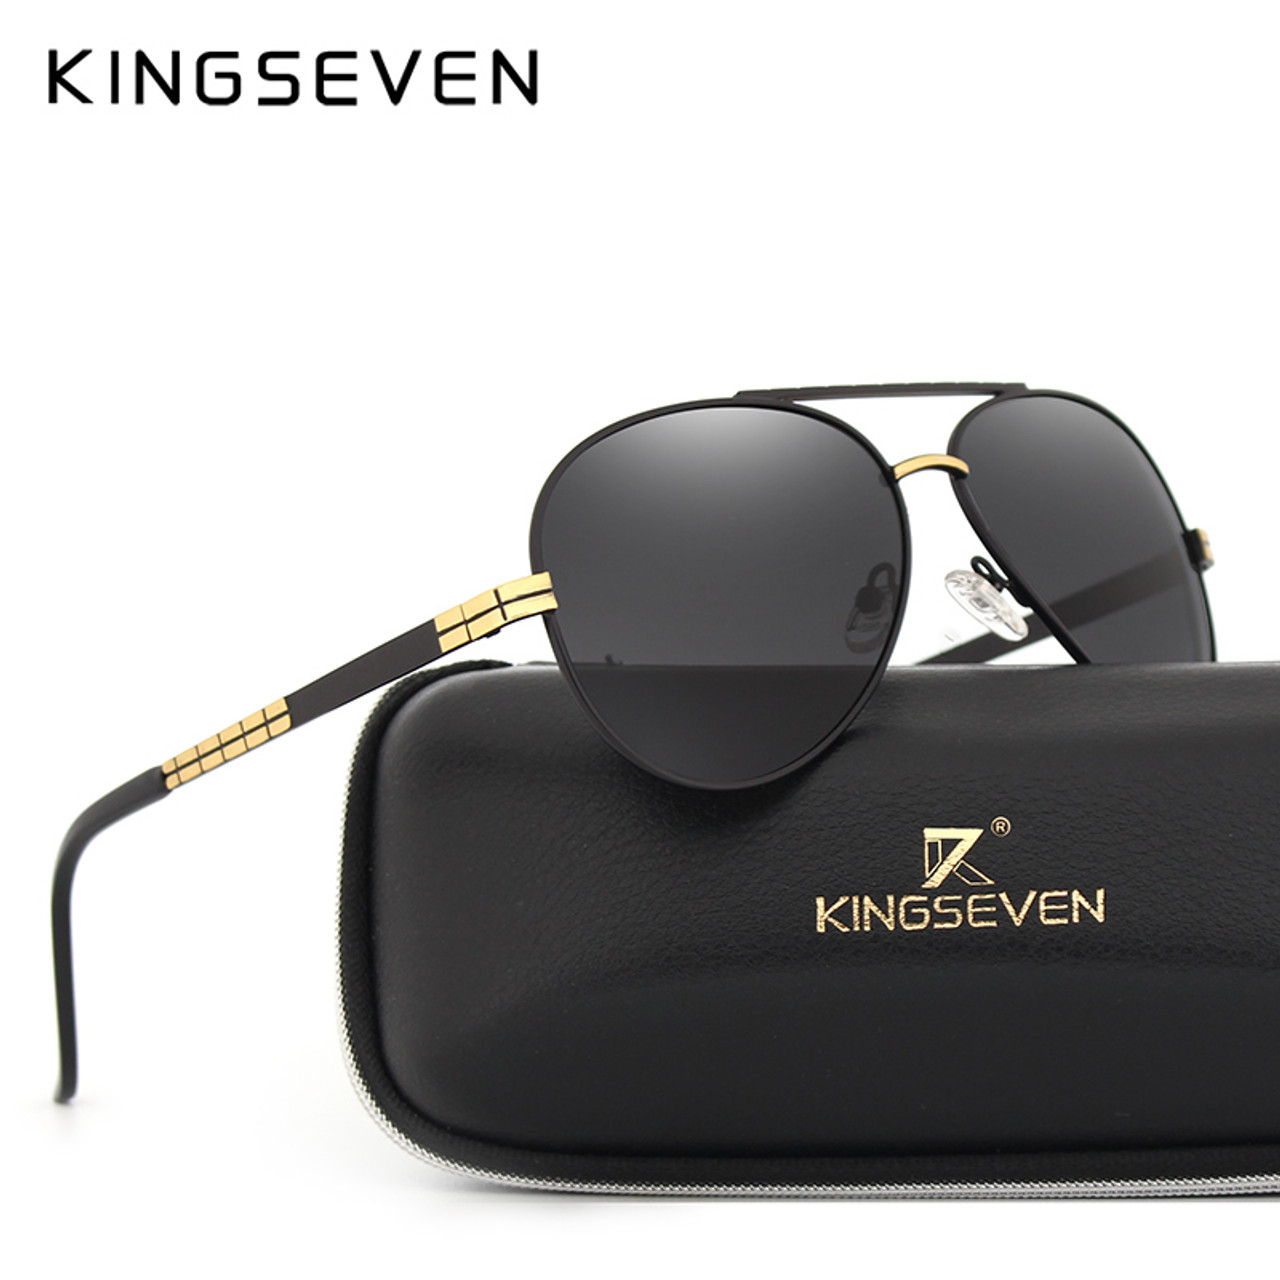 8c761f48cc Hd Men s Polarized Kingseven Brand Fashion Classic Sunglasses aWqPf0